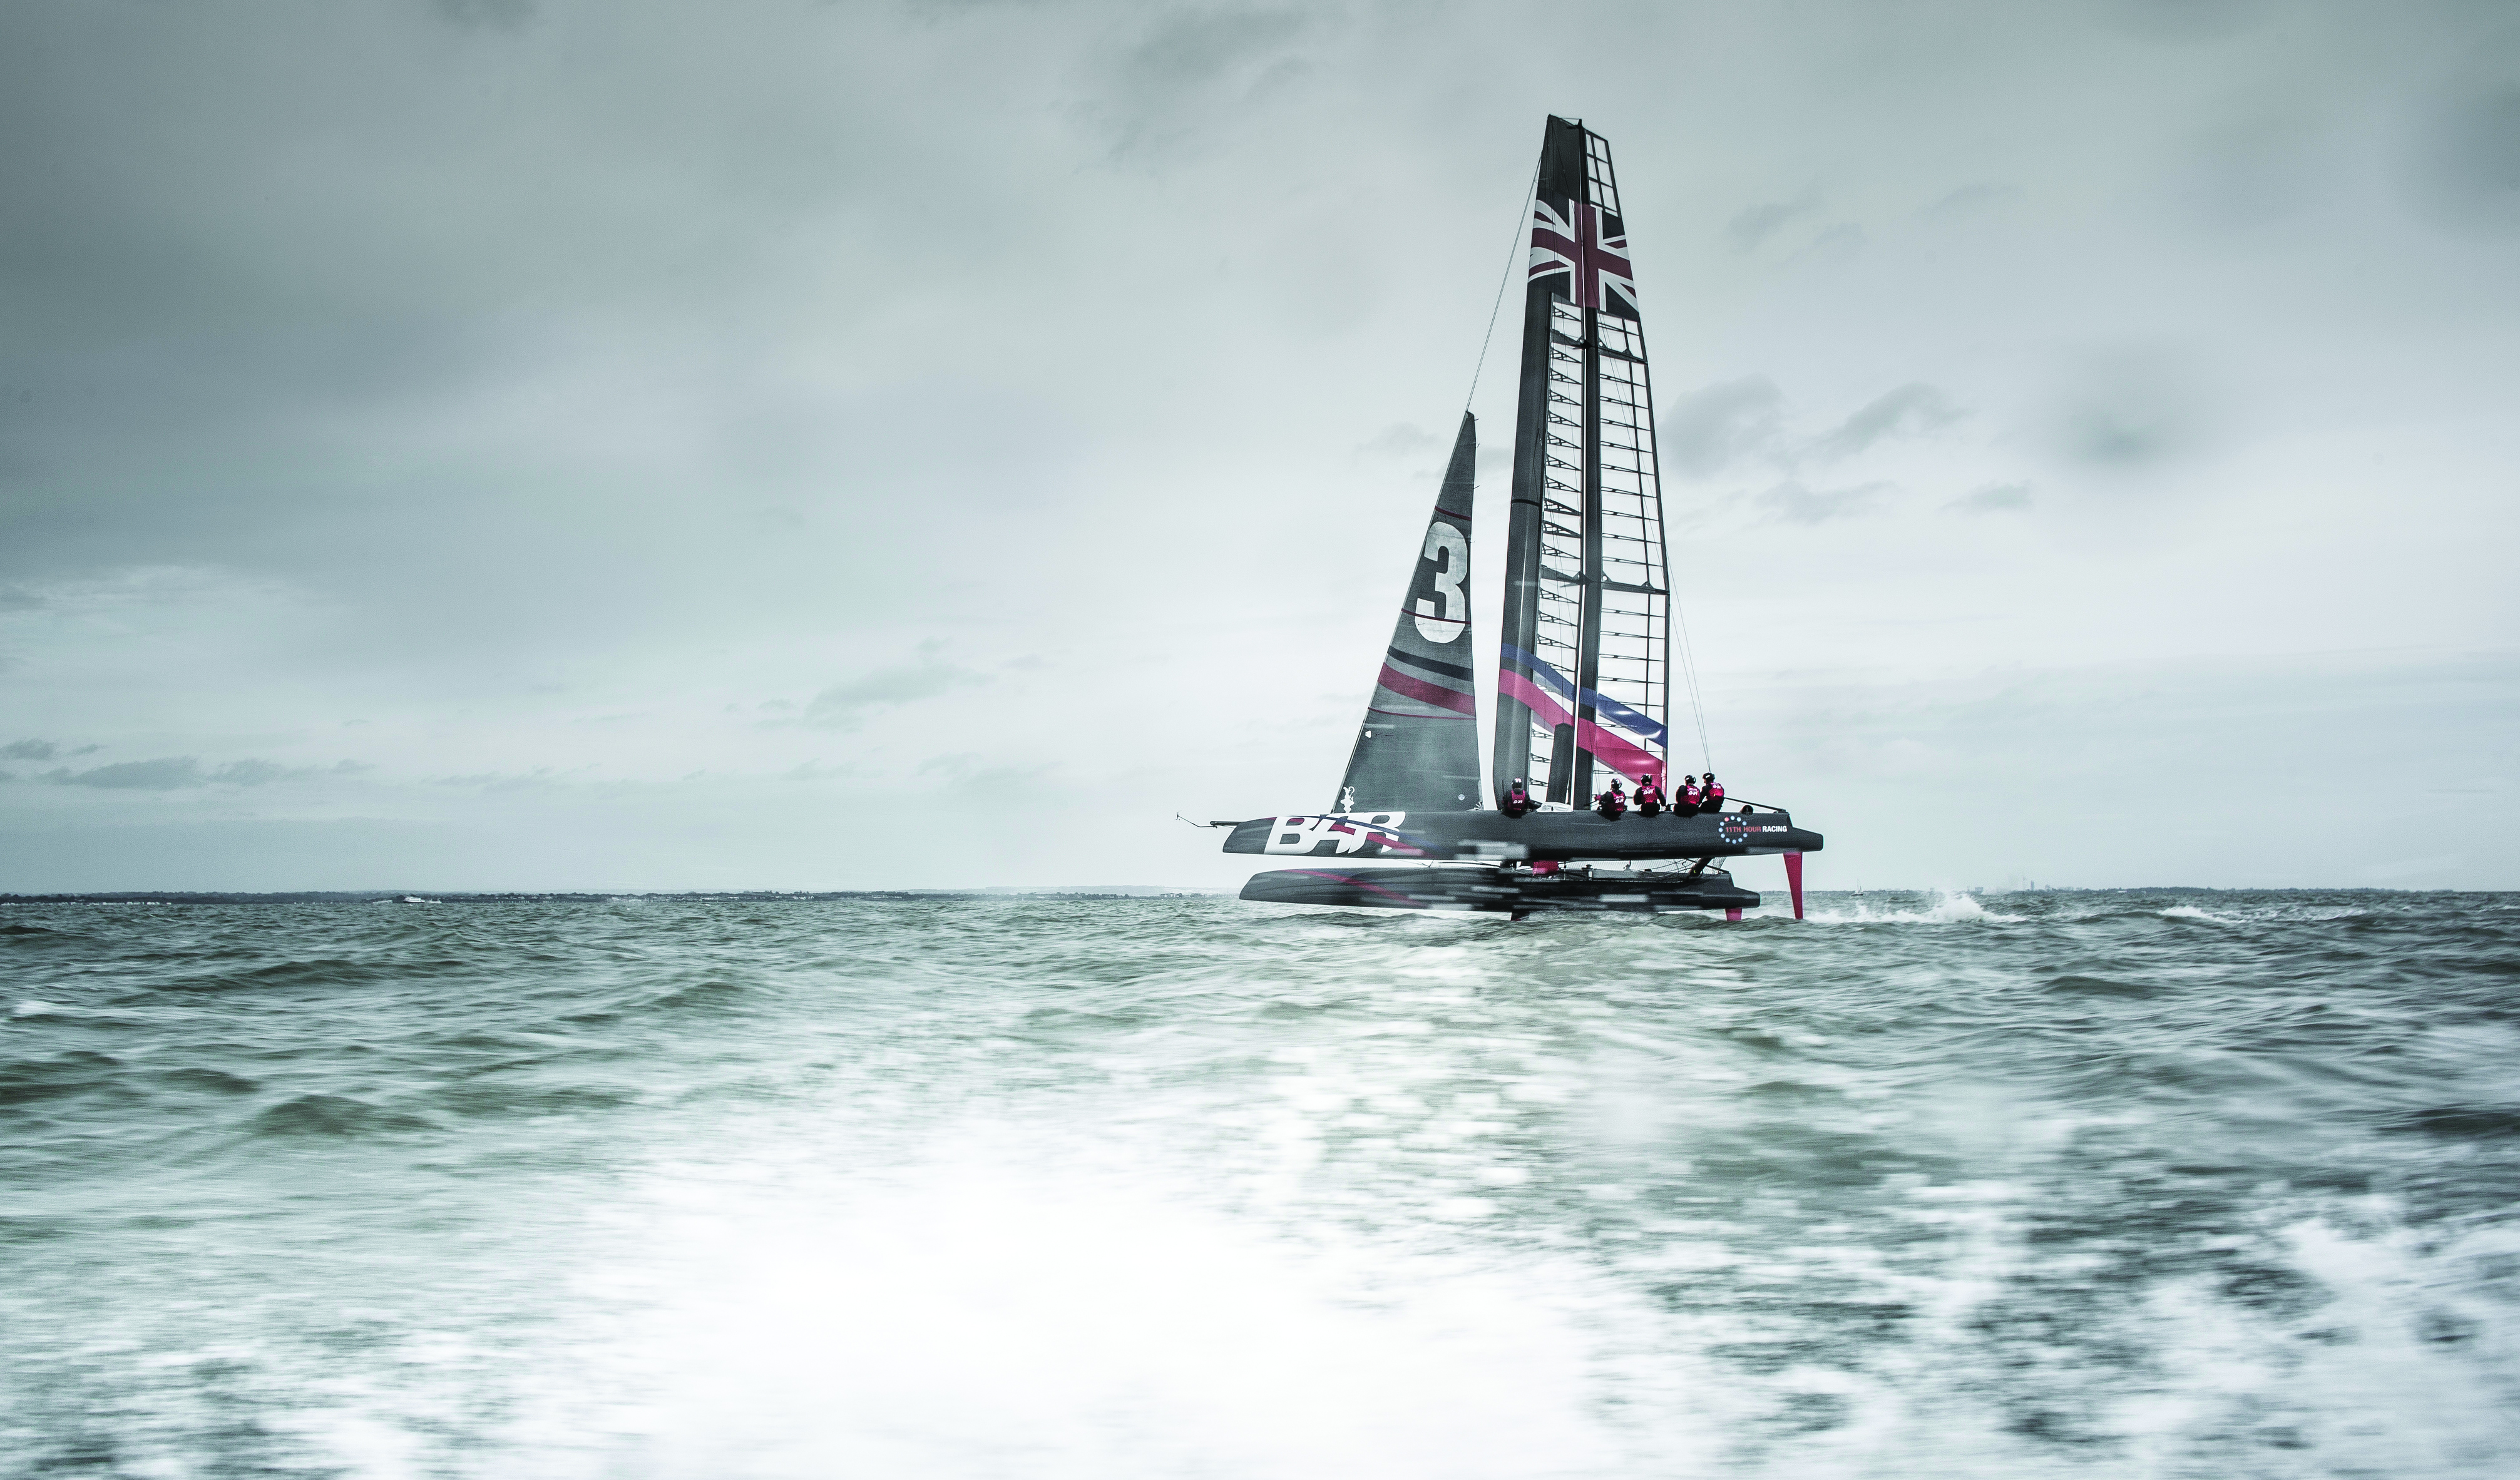 Land Rover BAR uses Siemens Digital Industries Software to help develop a race boat for the 2017 America's Cup